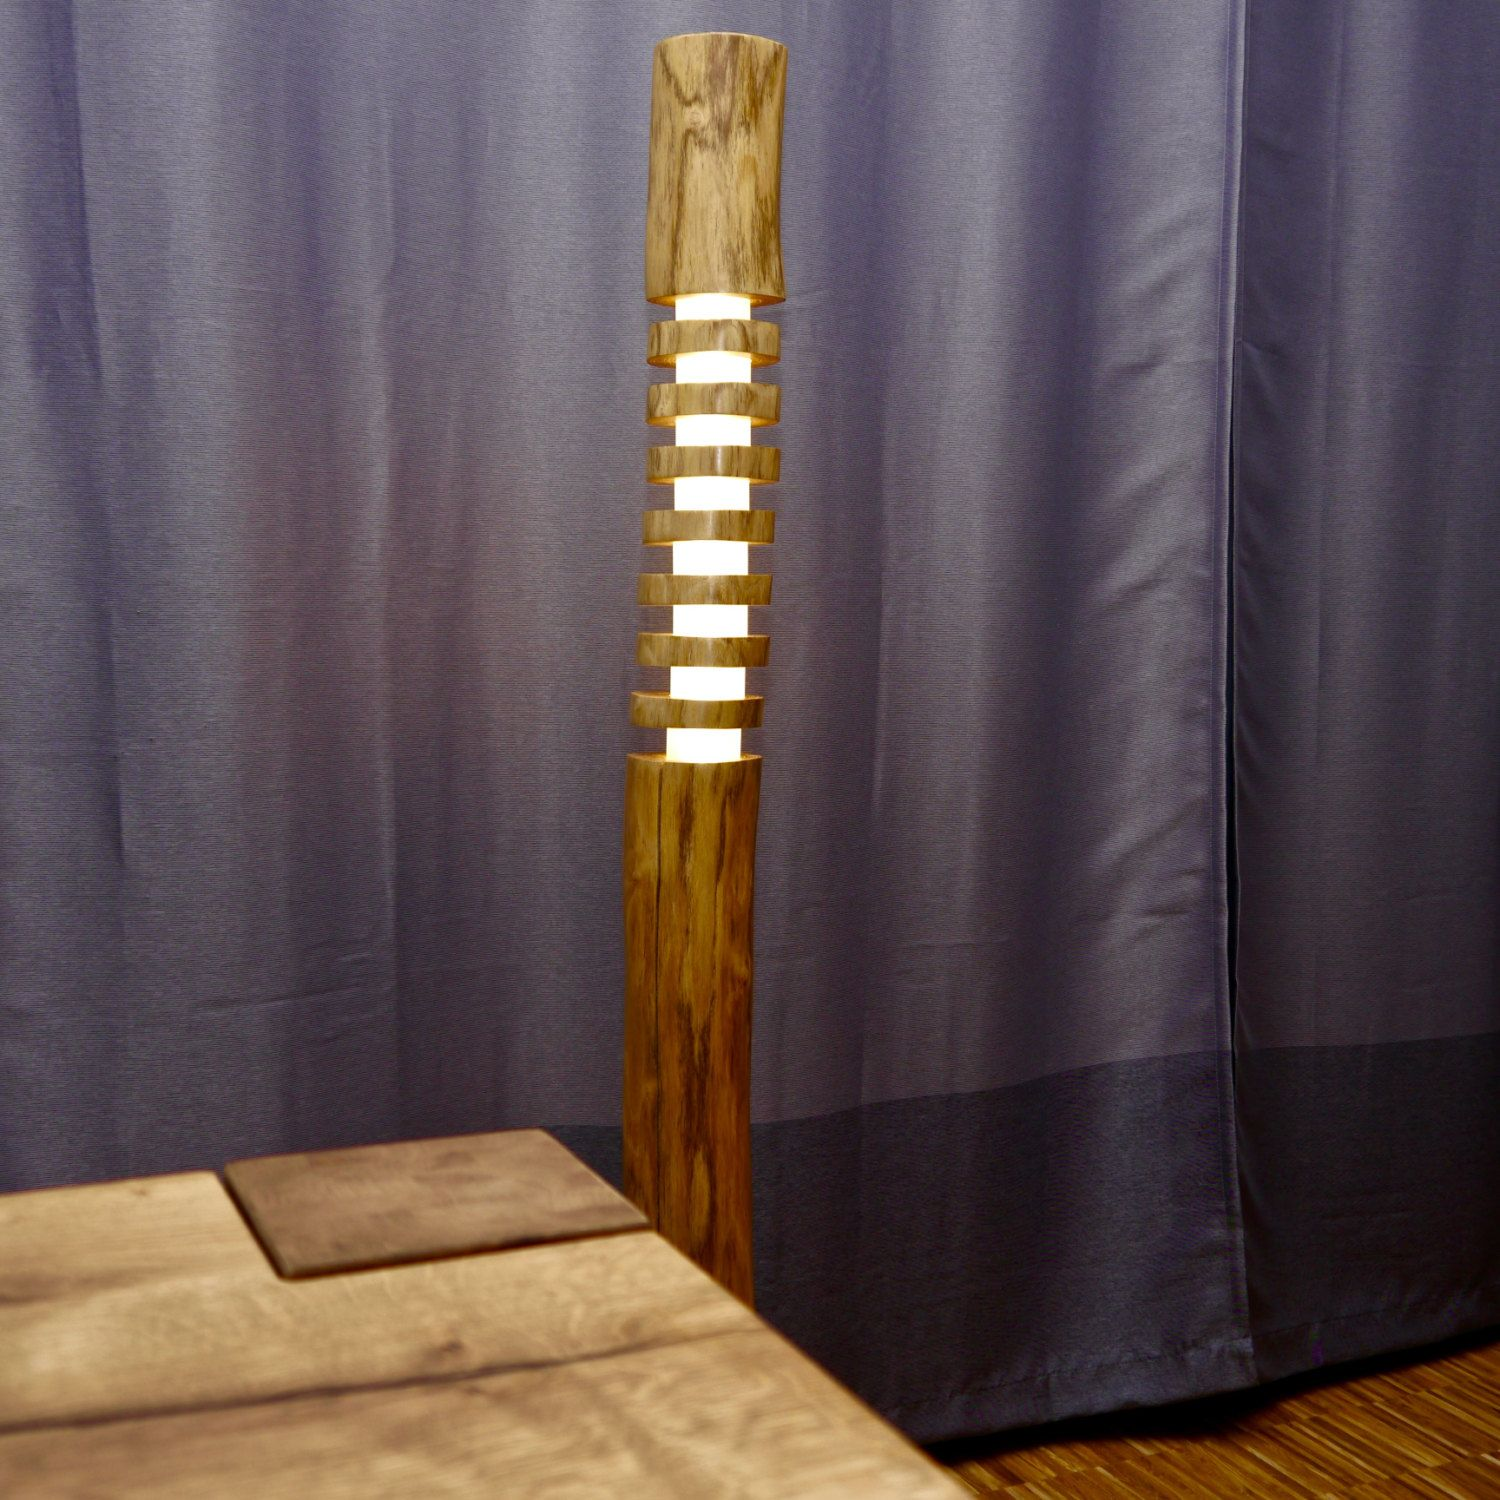 Holz Stehlampe Design Wooden Floor Lamp No3 F Lb150 Led Lampe